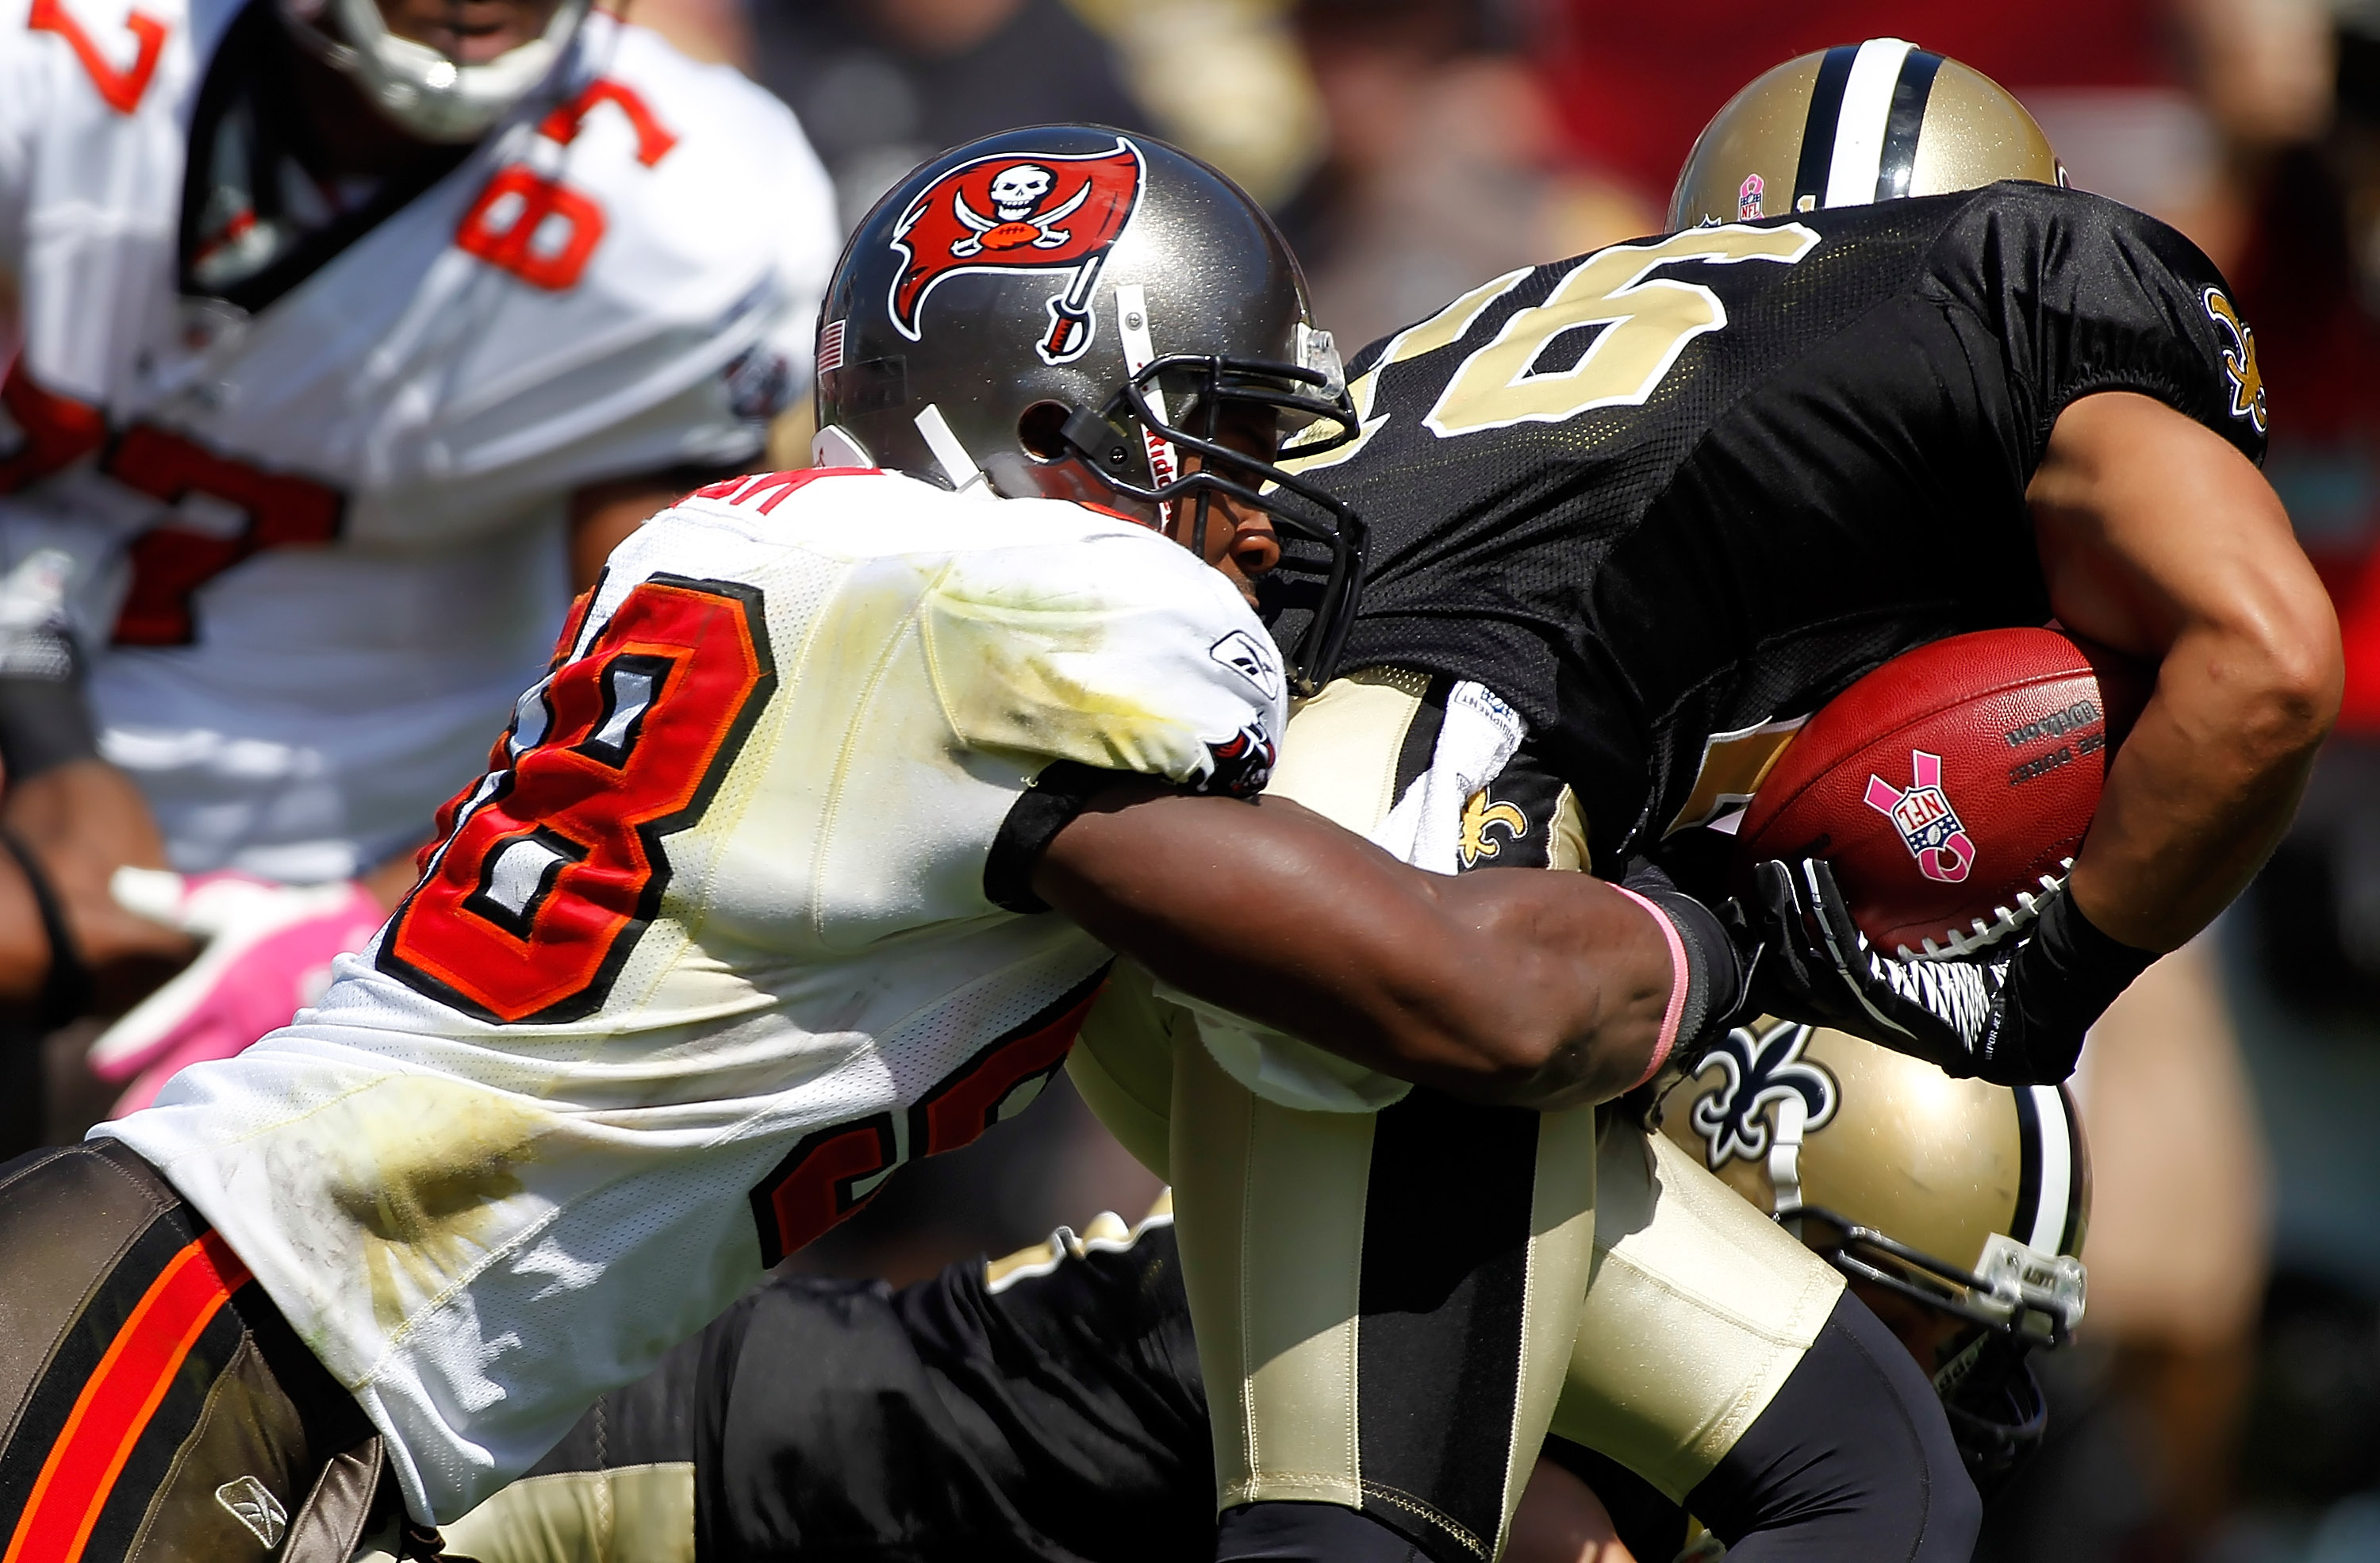 TAMPA, FL - OCTOBER 17:  Linebacker Quincy Black #58 of the Tampa Bay Buccaneers tackles Lance Moore #16 of the New Orleans Saints on a return during the game at Raymond James Stadium on October 17, 2010 in Tampa, Florida.  (Photo by J. Meric/Getty Images